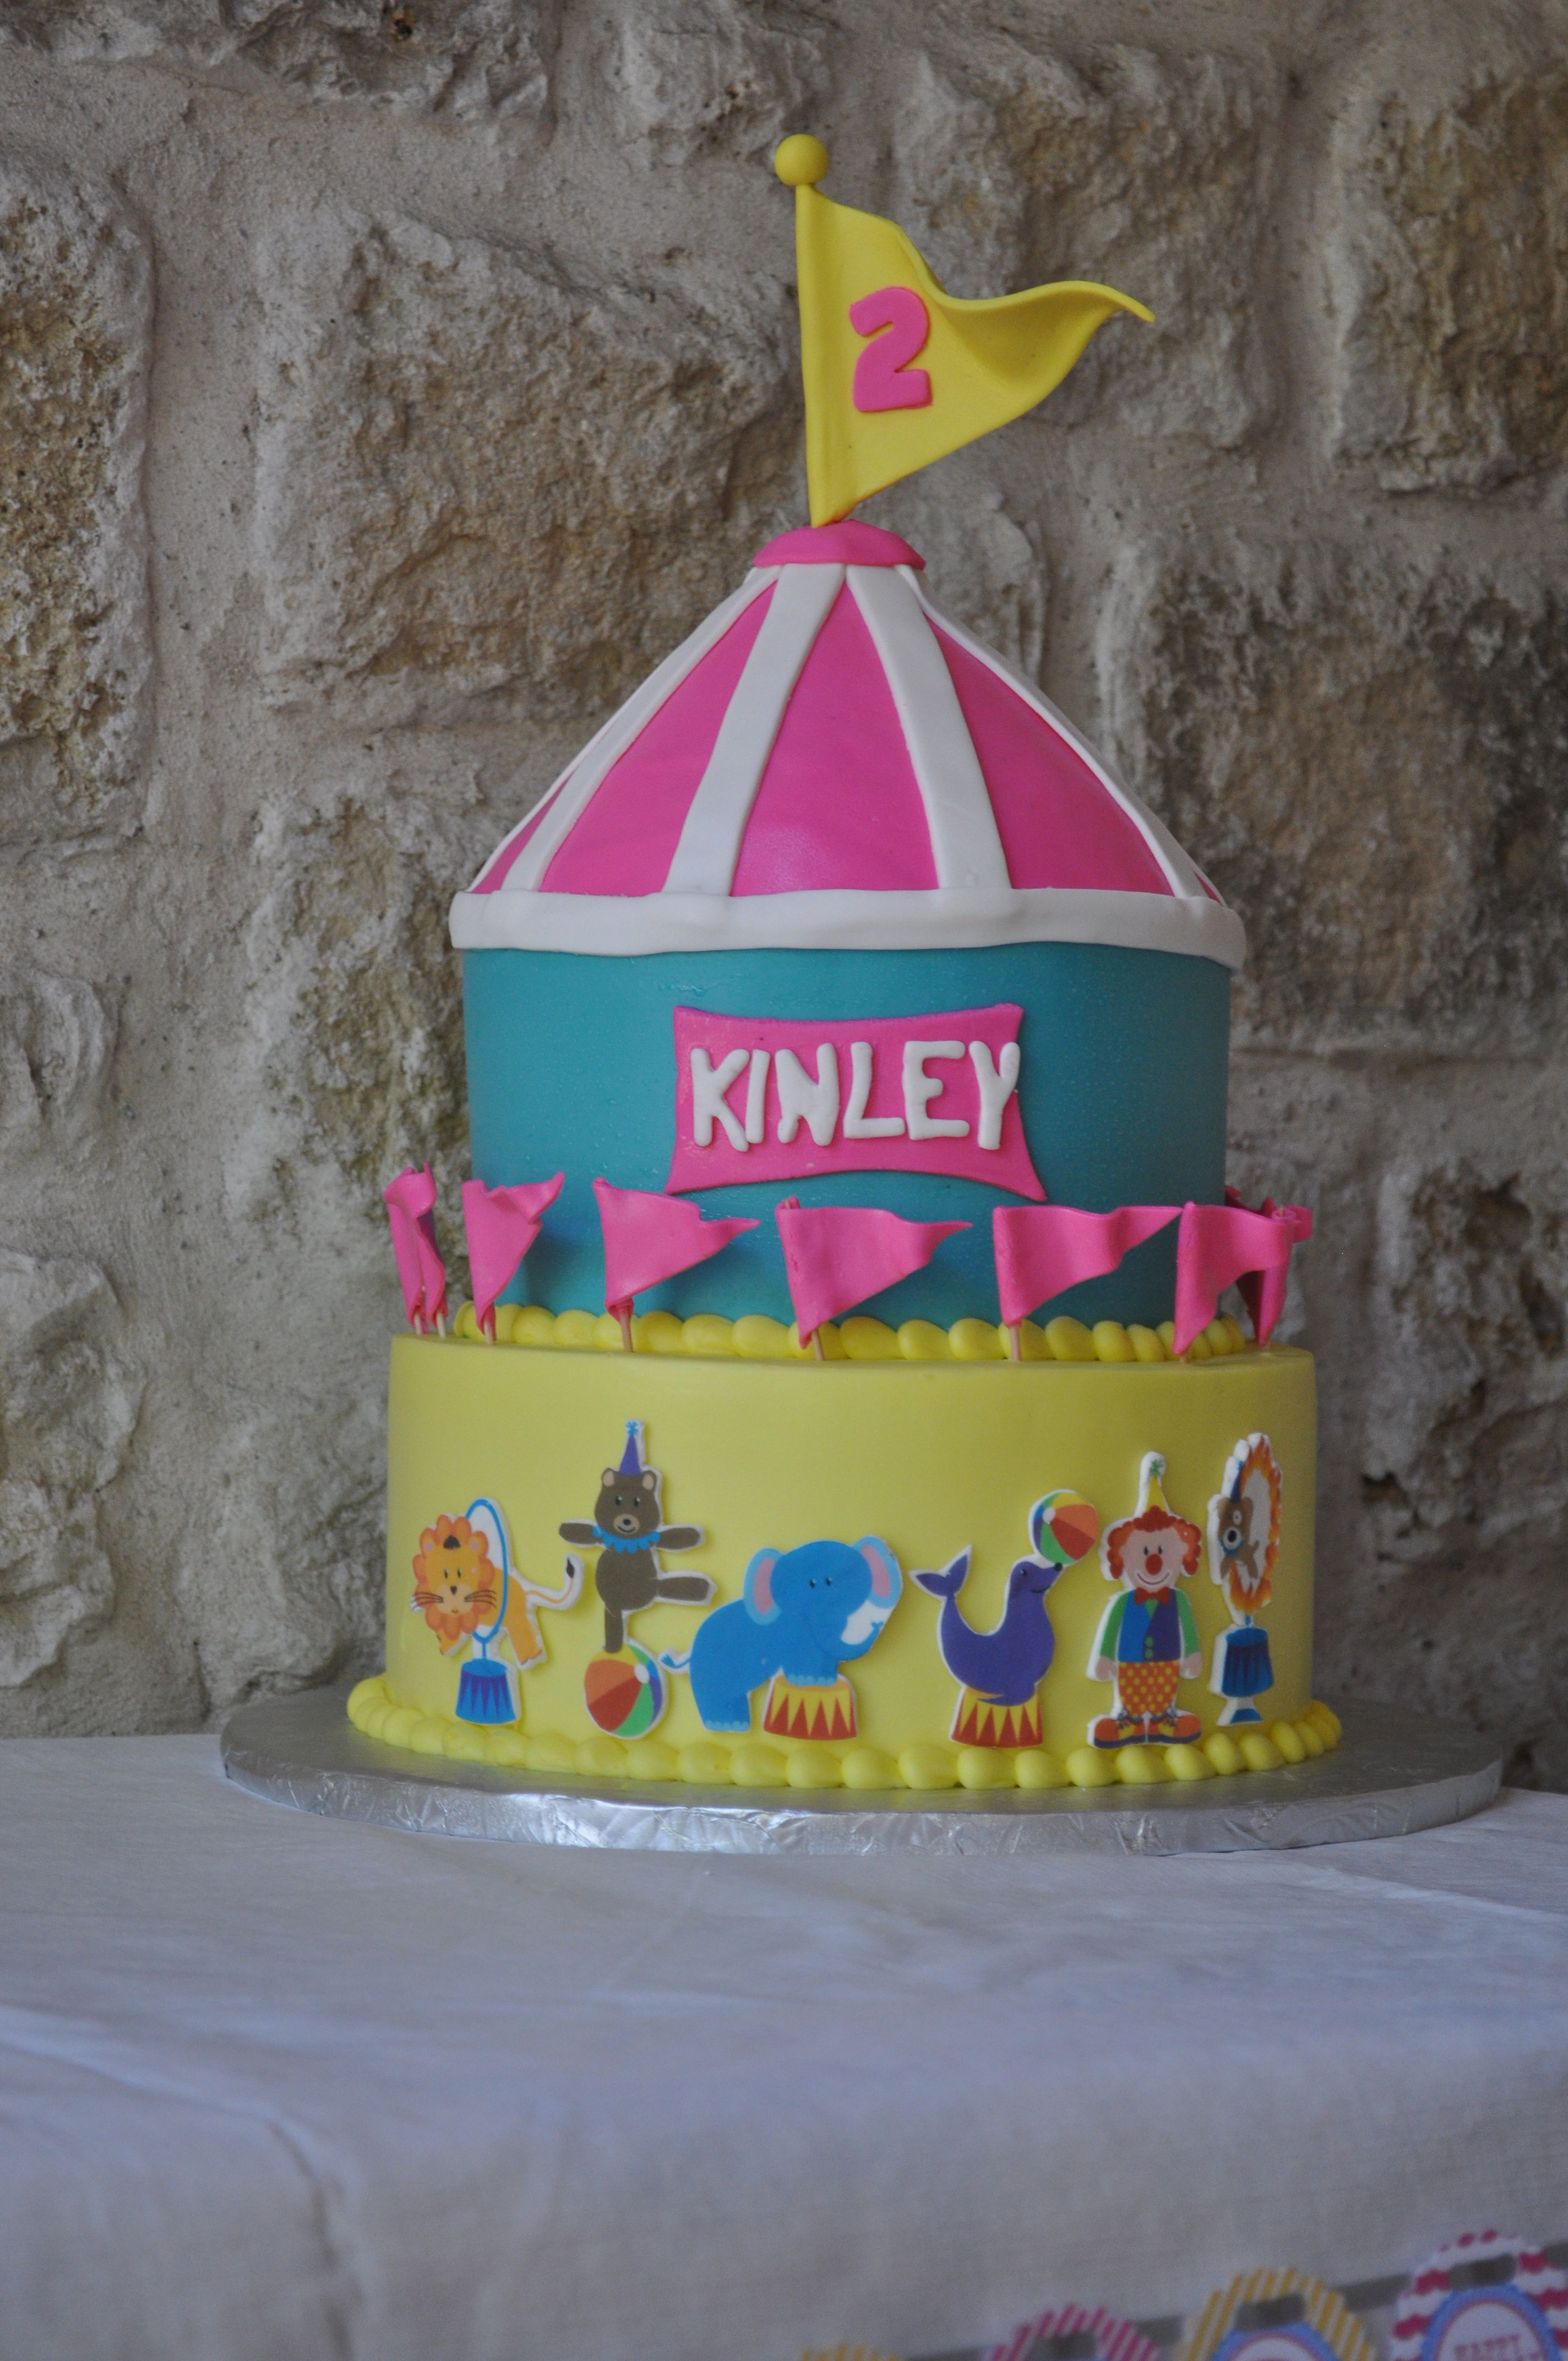 Yummy Cake Thanks To Sonjas Bakery In Dallas Kinley 2nd Birthday